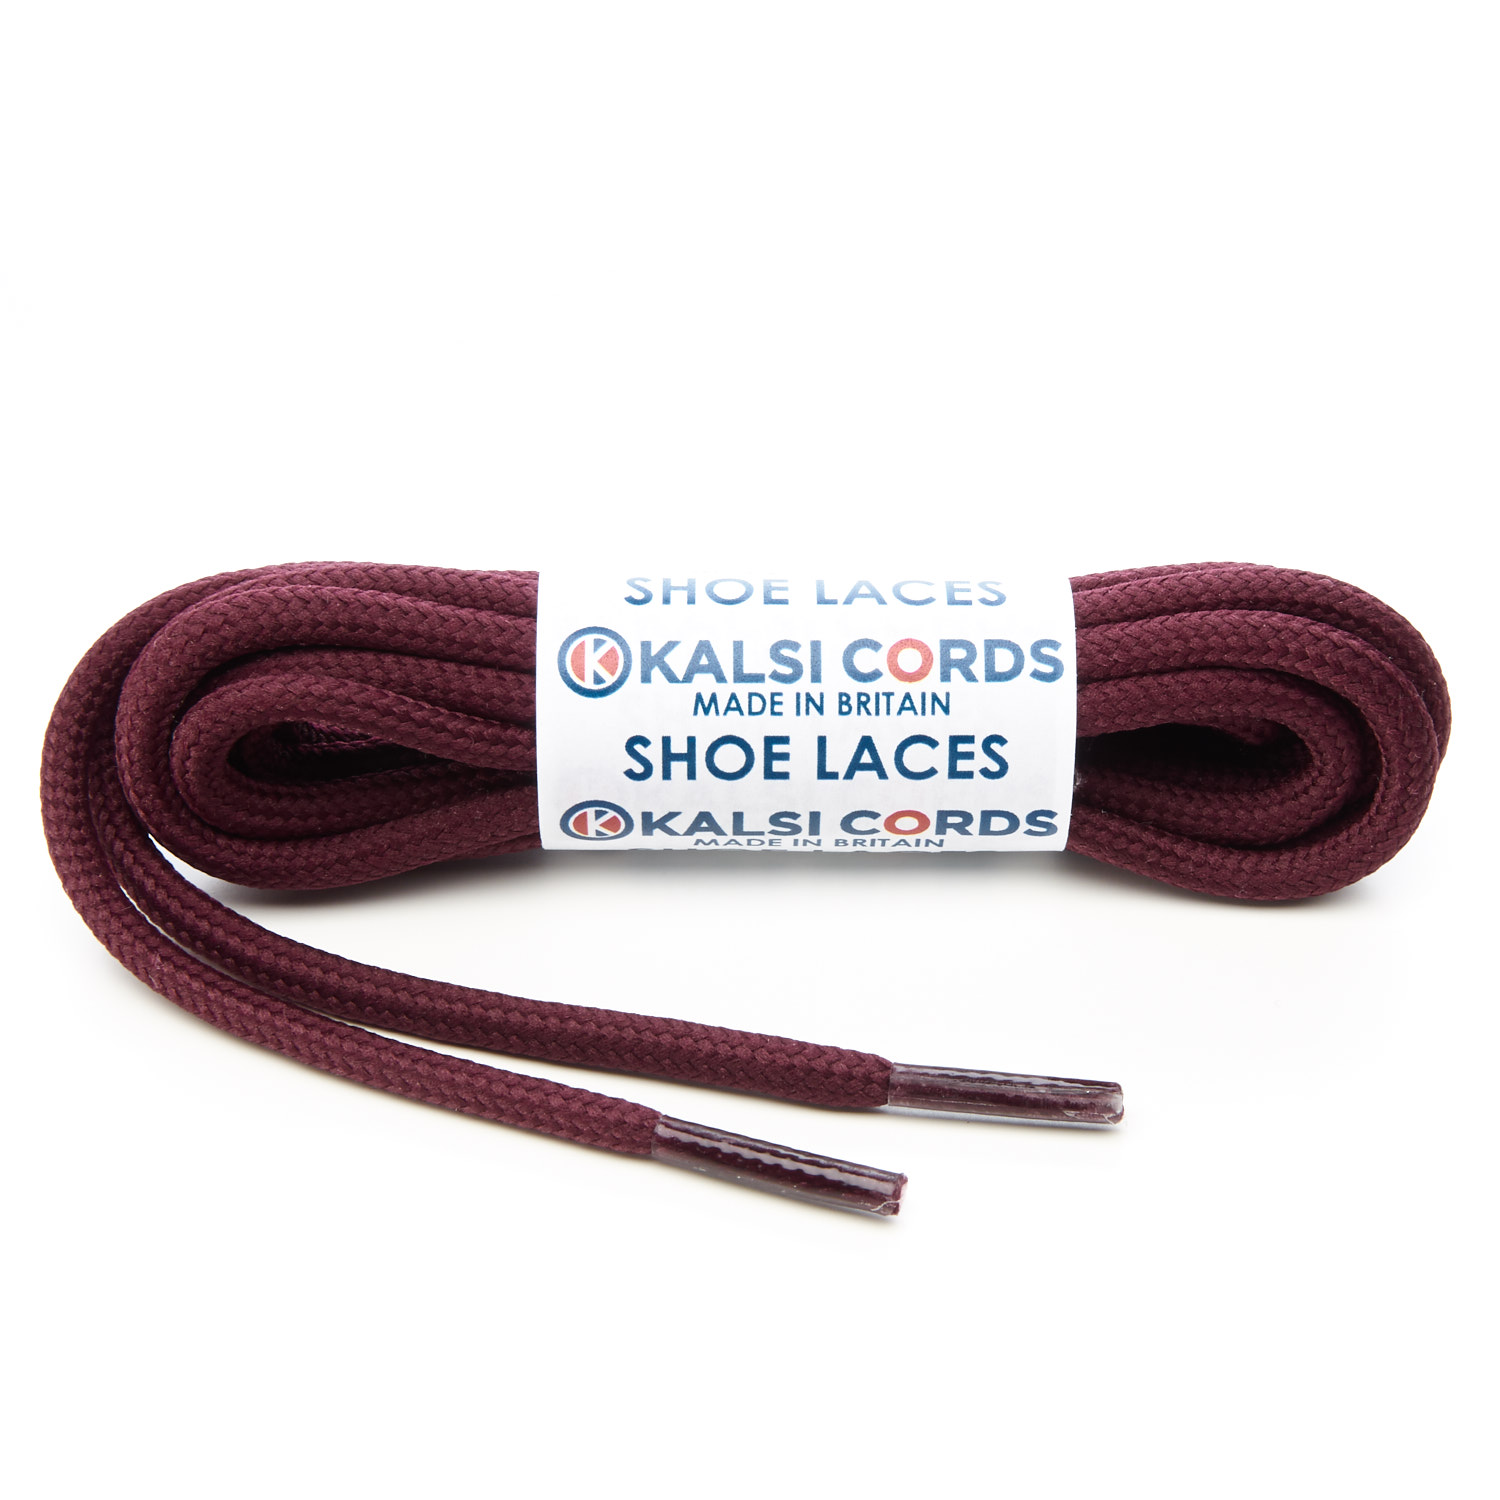 Ian Knaggs Commercial Packshot Photographer - Shoe Laces